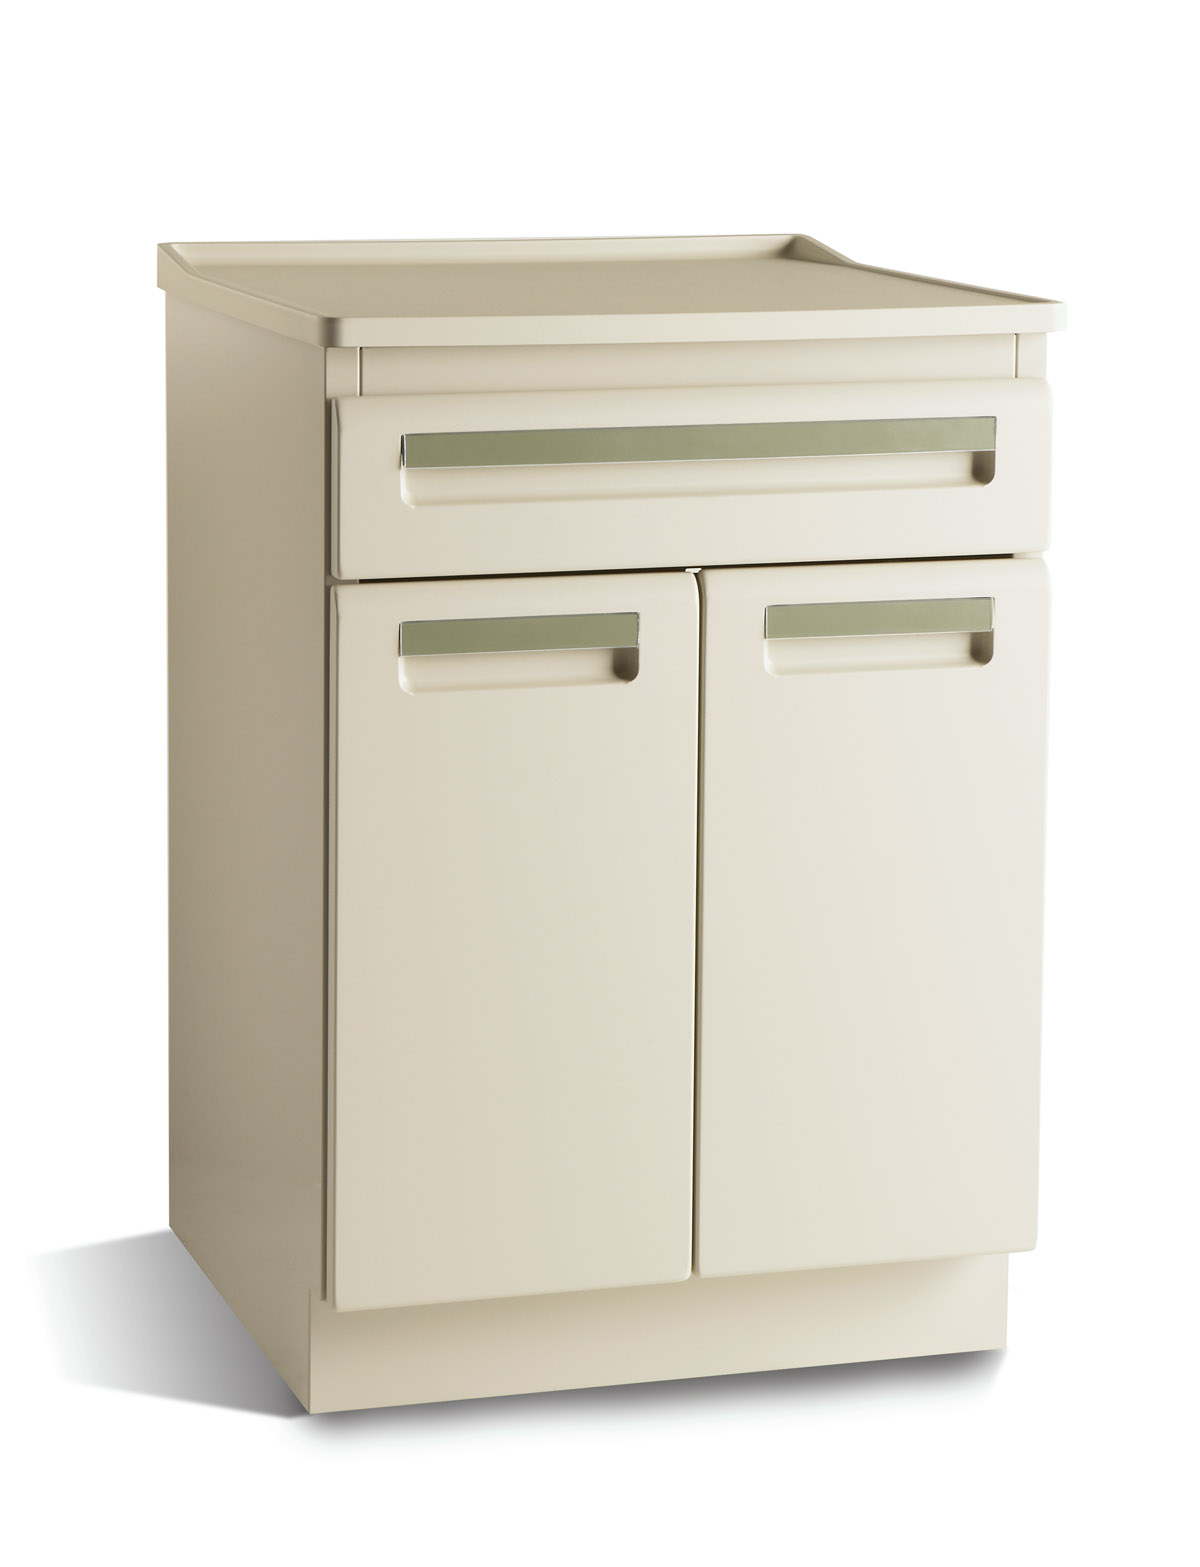 CABINET, TREATMENT, MIDMARK 6060, W/SHELF, PB